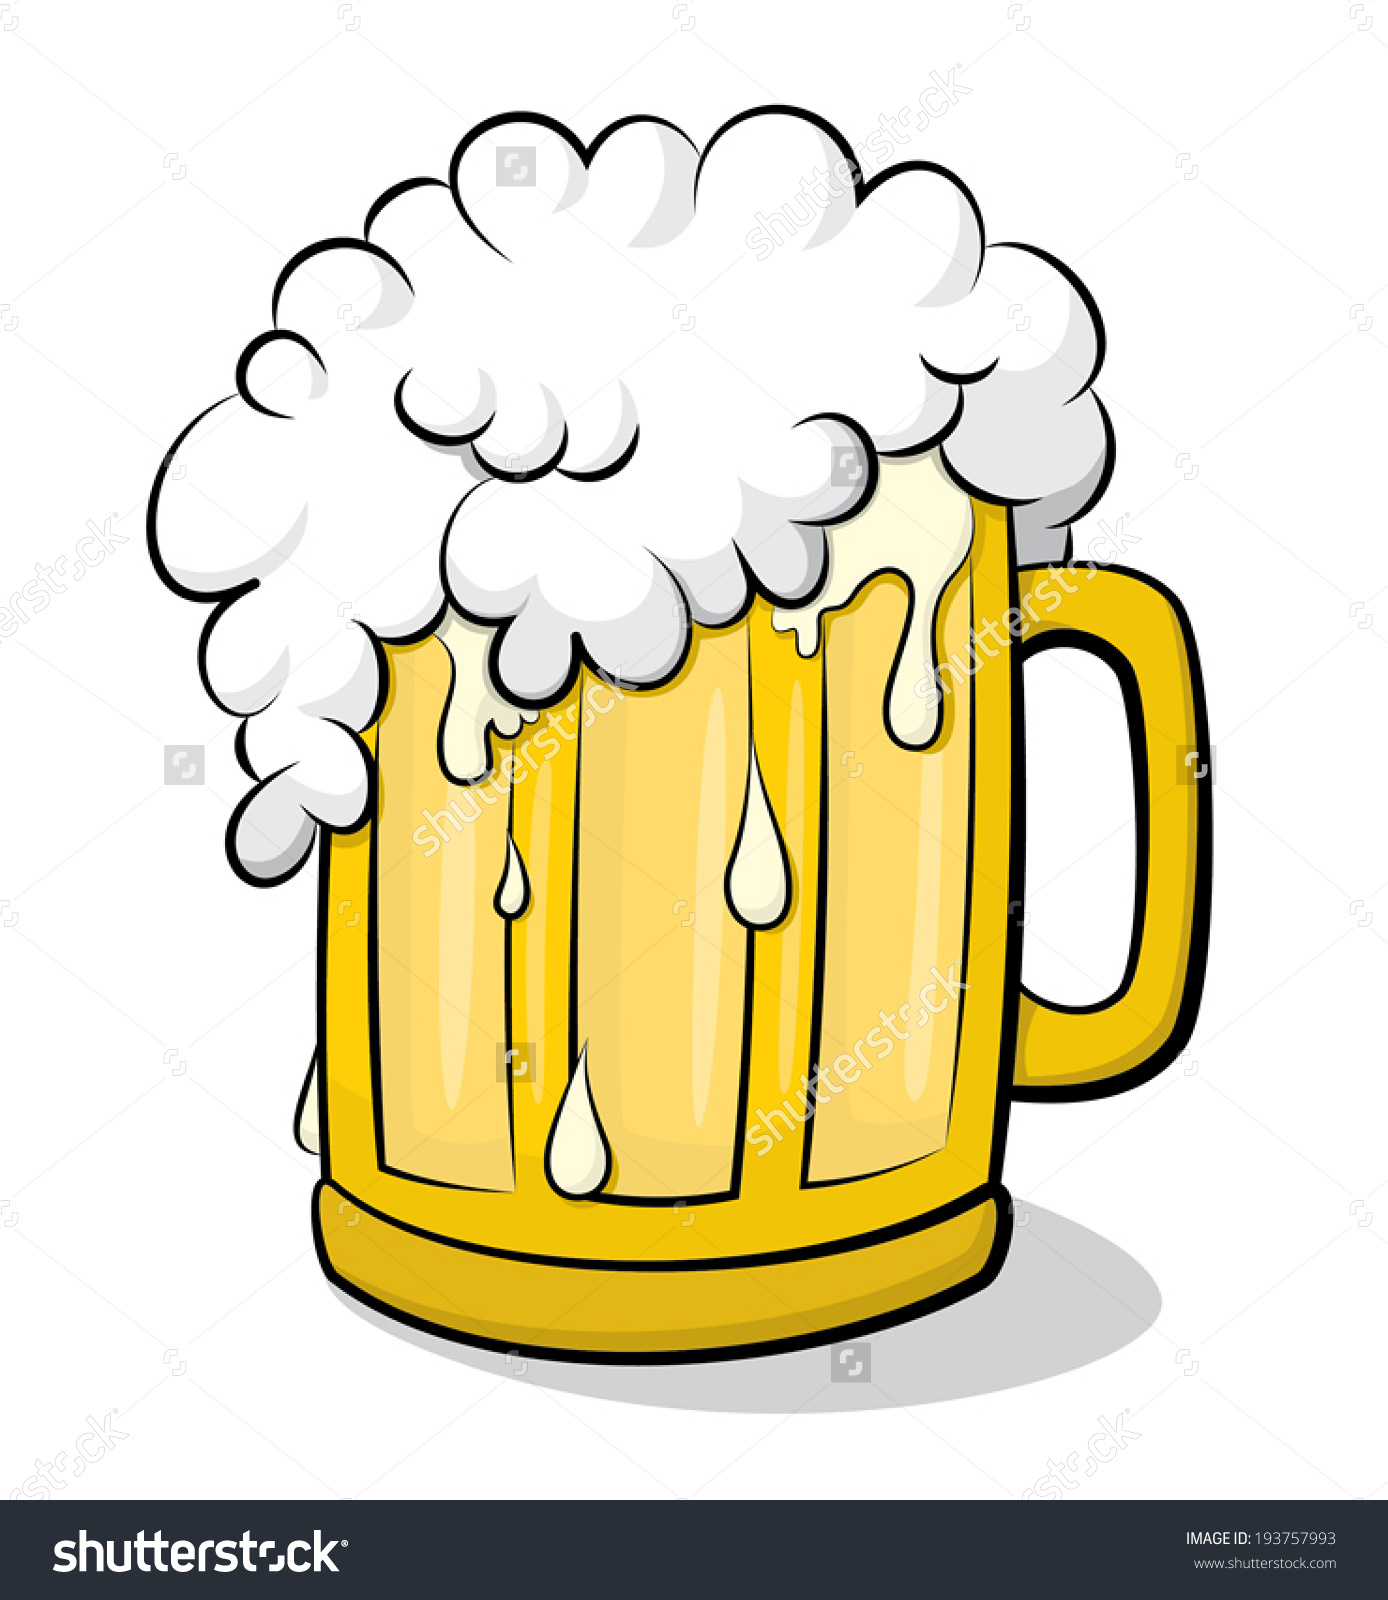 Clipart beer glass - ClipartFest